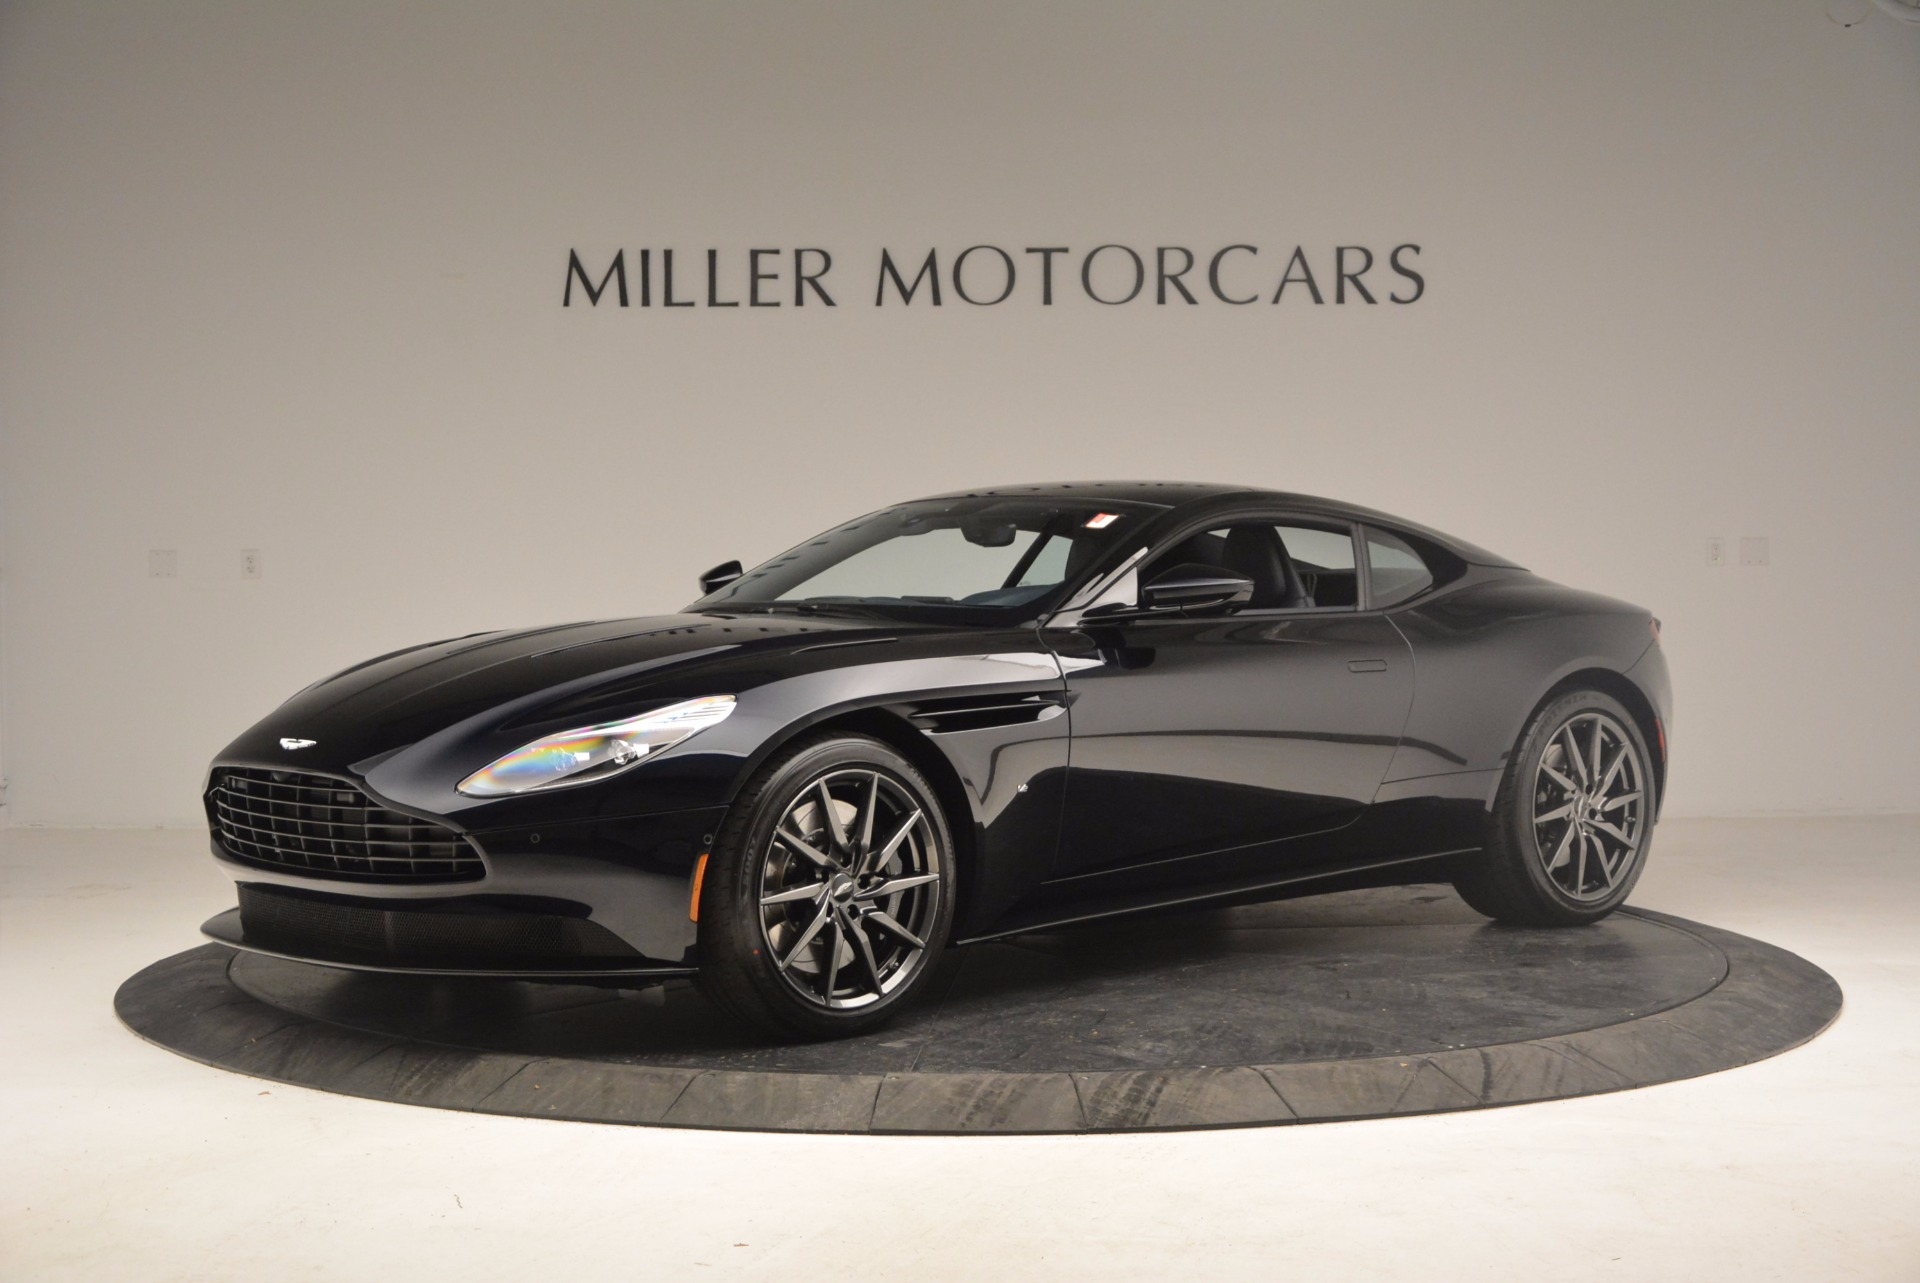 Used 2017 Aston Martin DB11 V12 Coupe for sale Sold at Alfa Romeo of Westport in Westport CT 06880 1